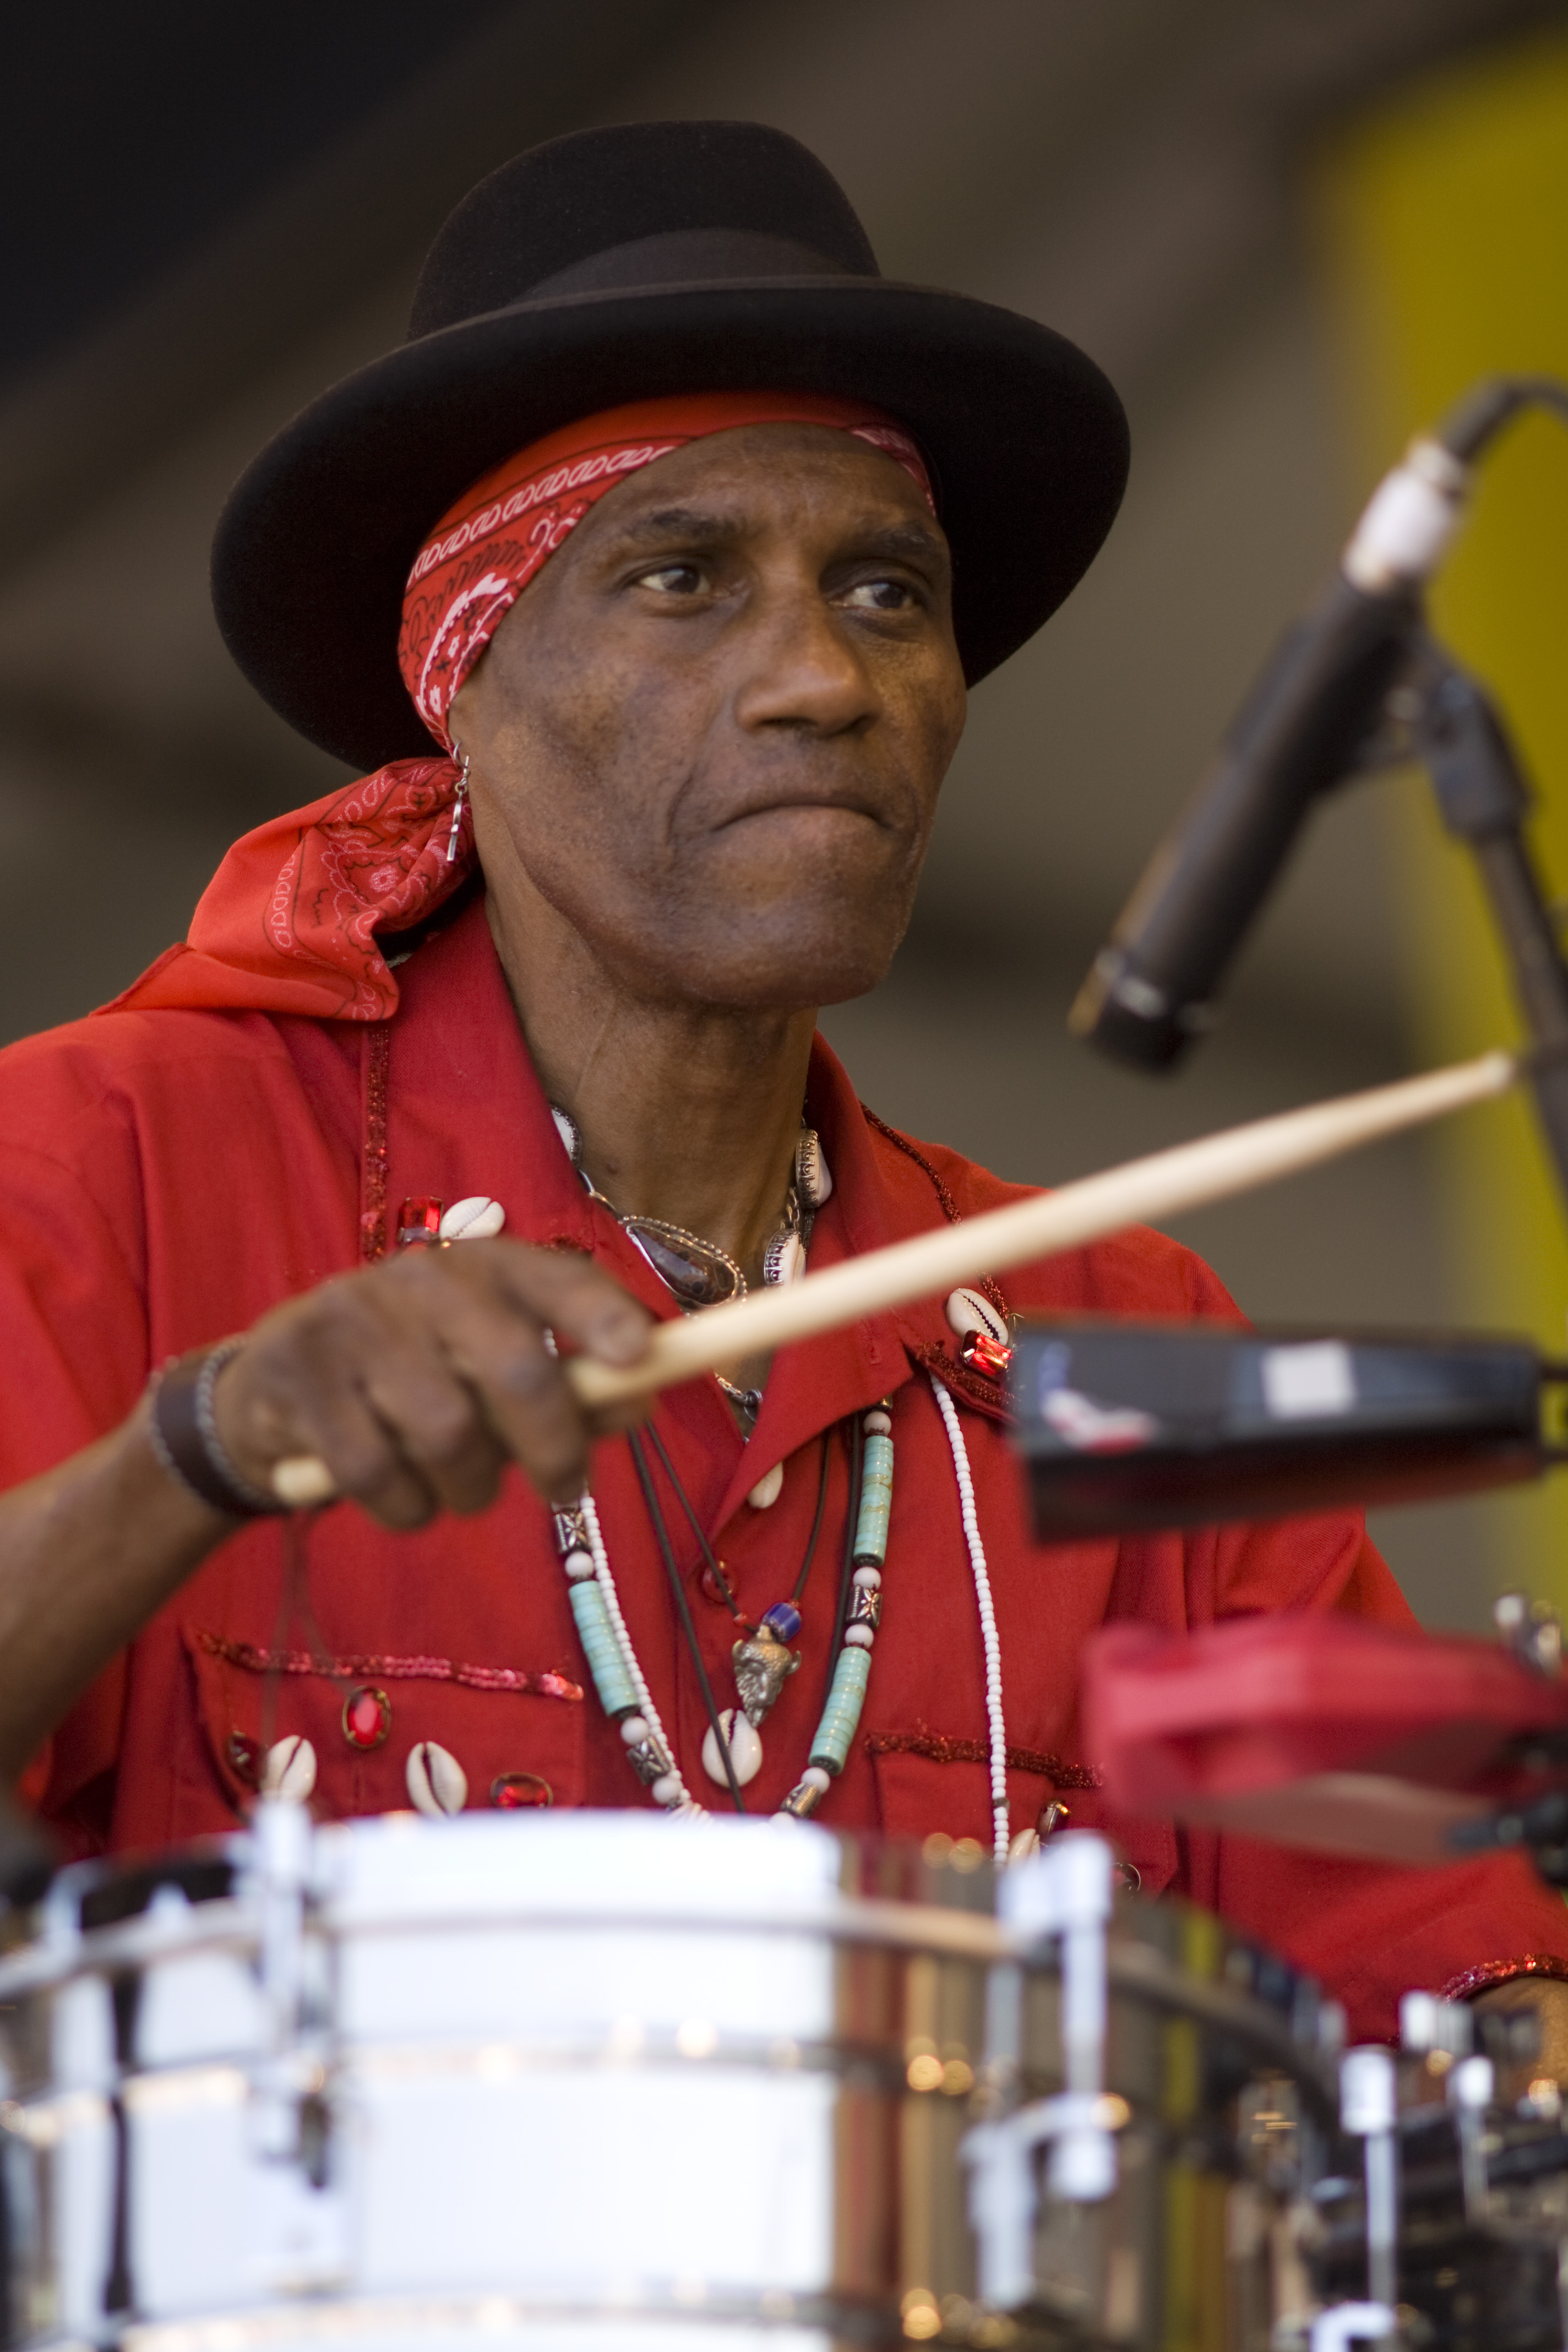 Cyrill Neville to Receive Louis Armstrong Award in December